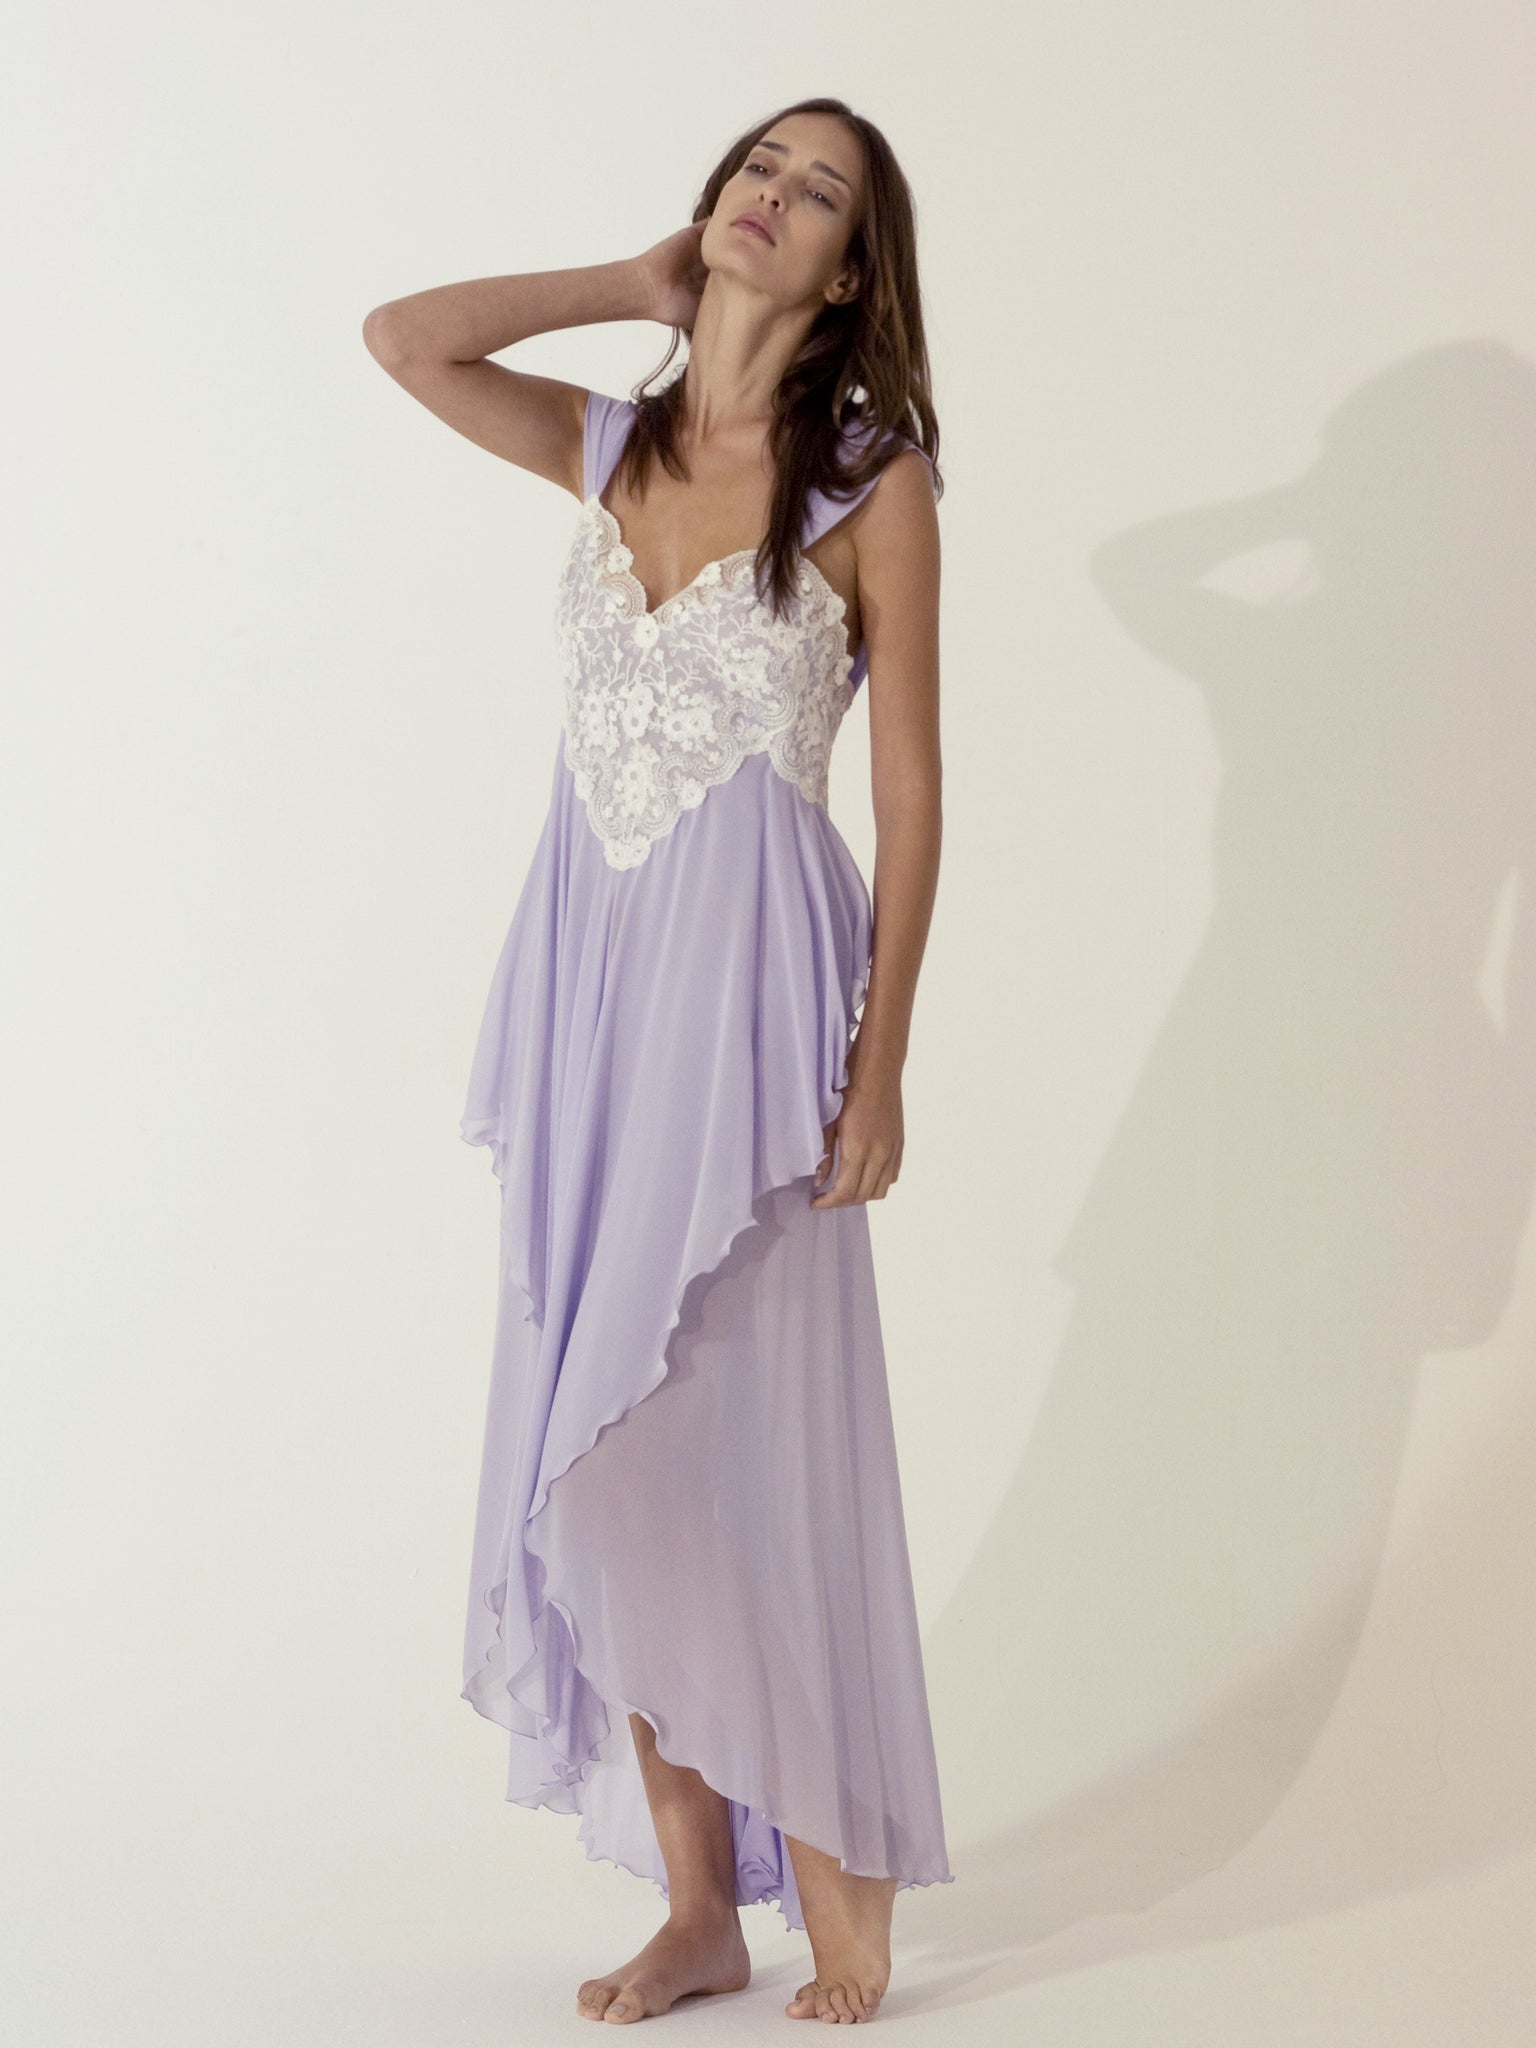 Long Silk Nightgown - Dress - italian lingerie